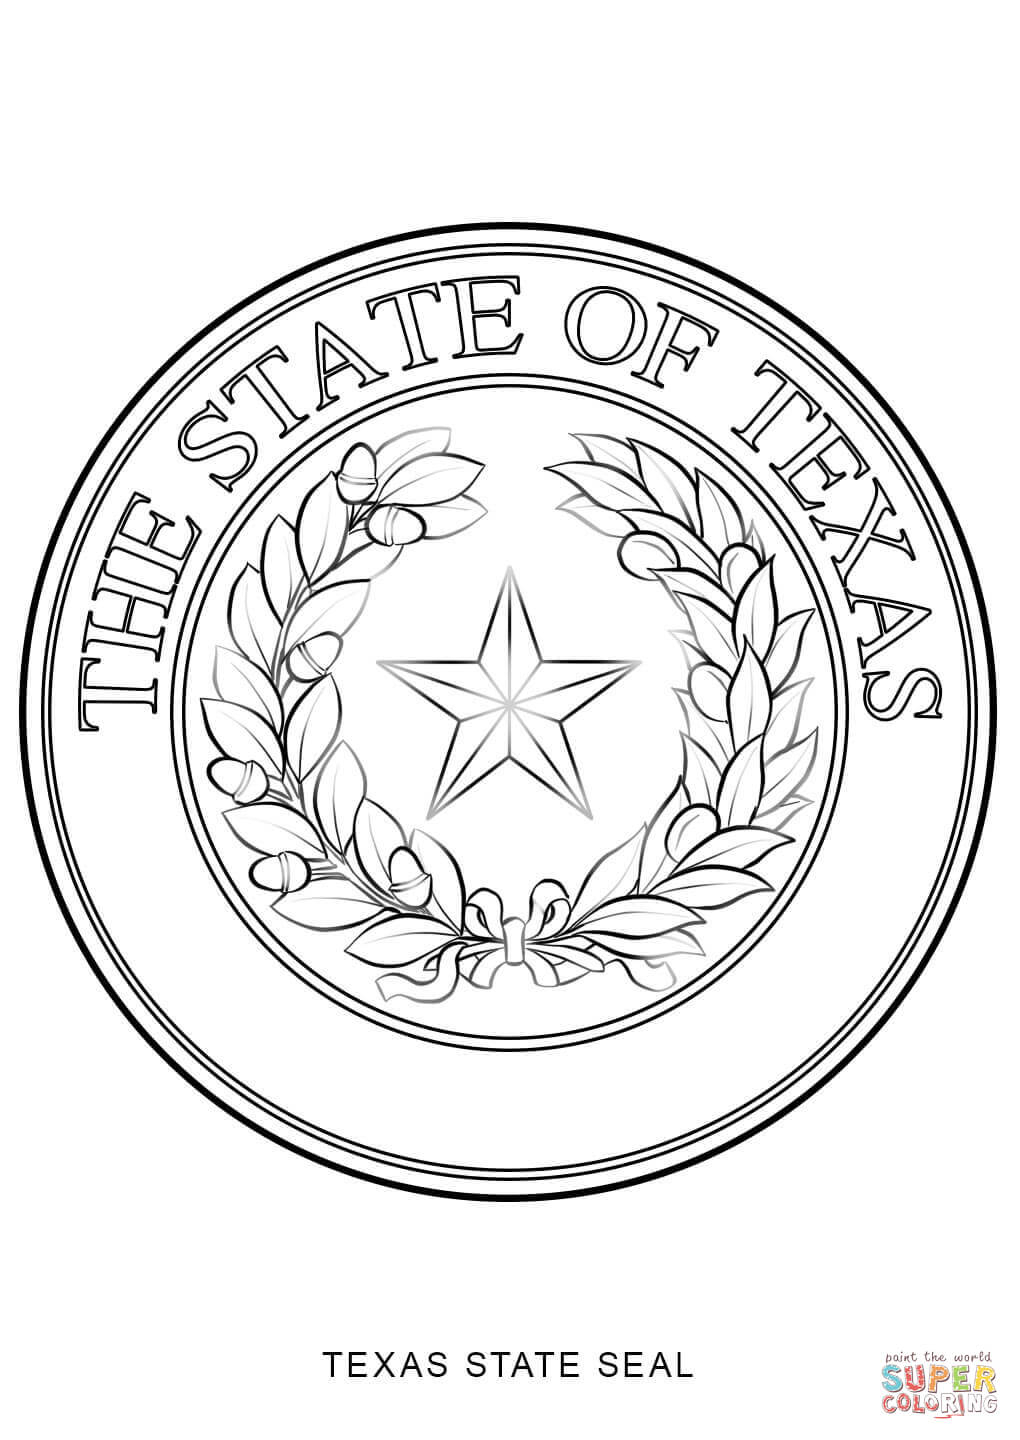 Texas State Seal Coloring Page Printable Of Perspective Texas Tech Coloring Pages Page to Print